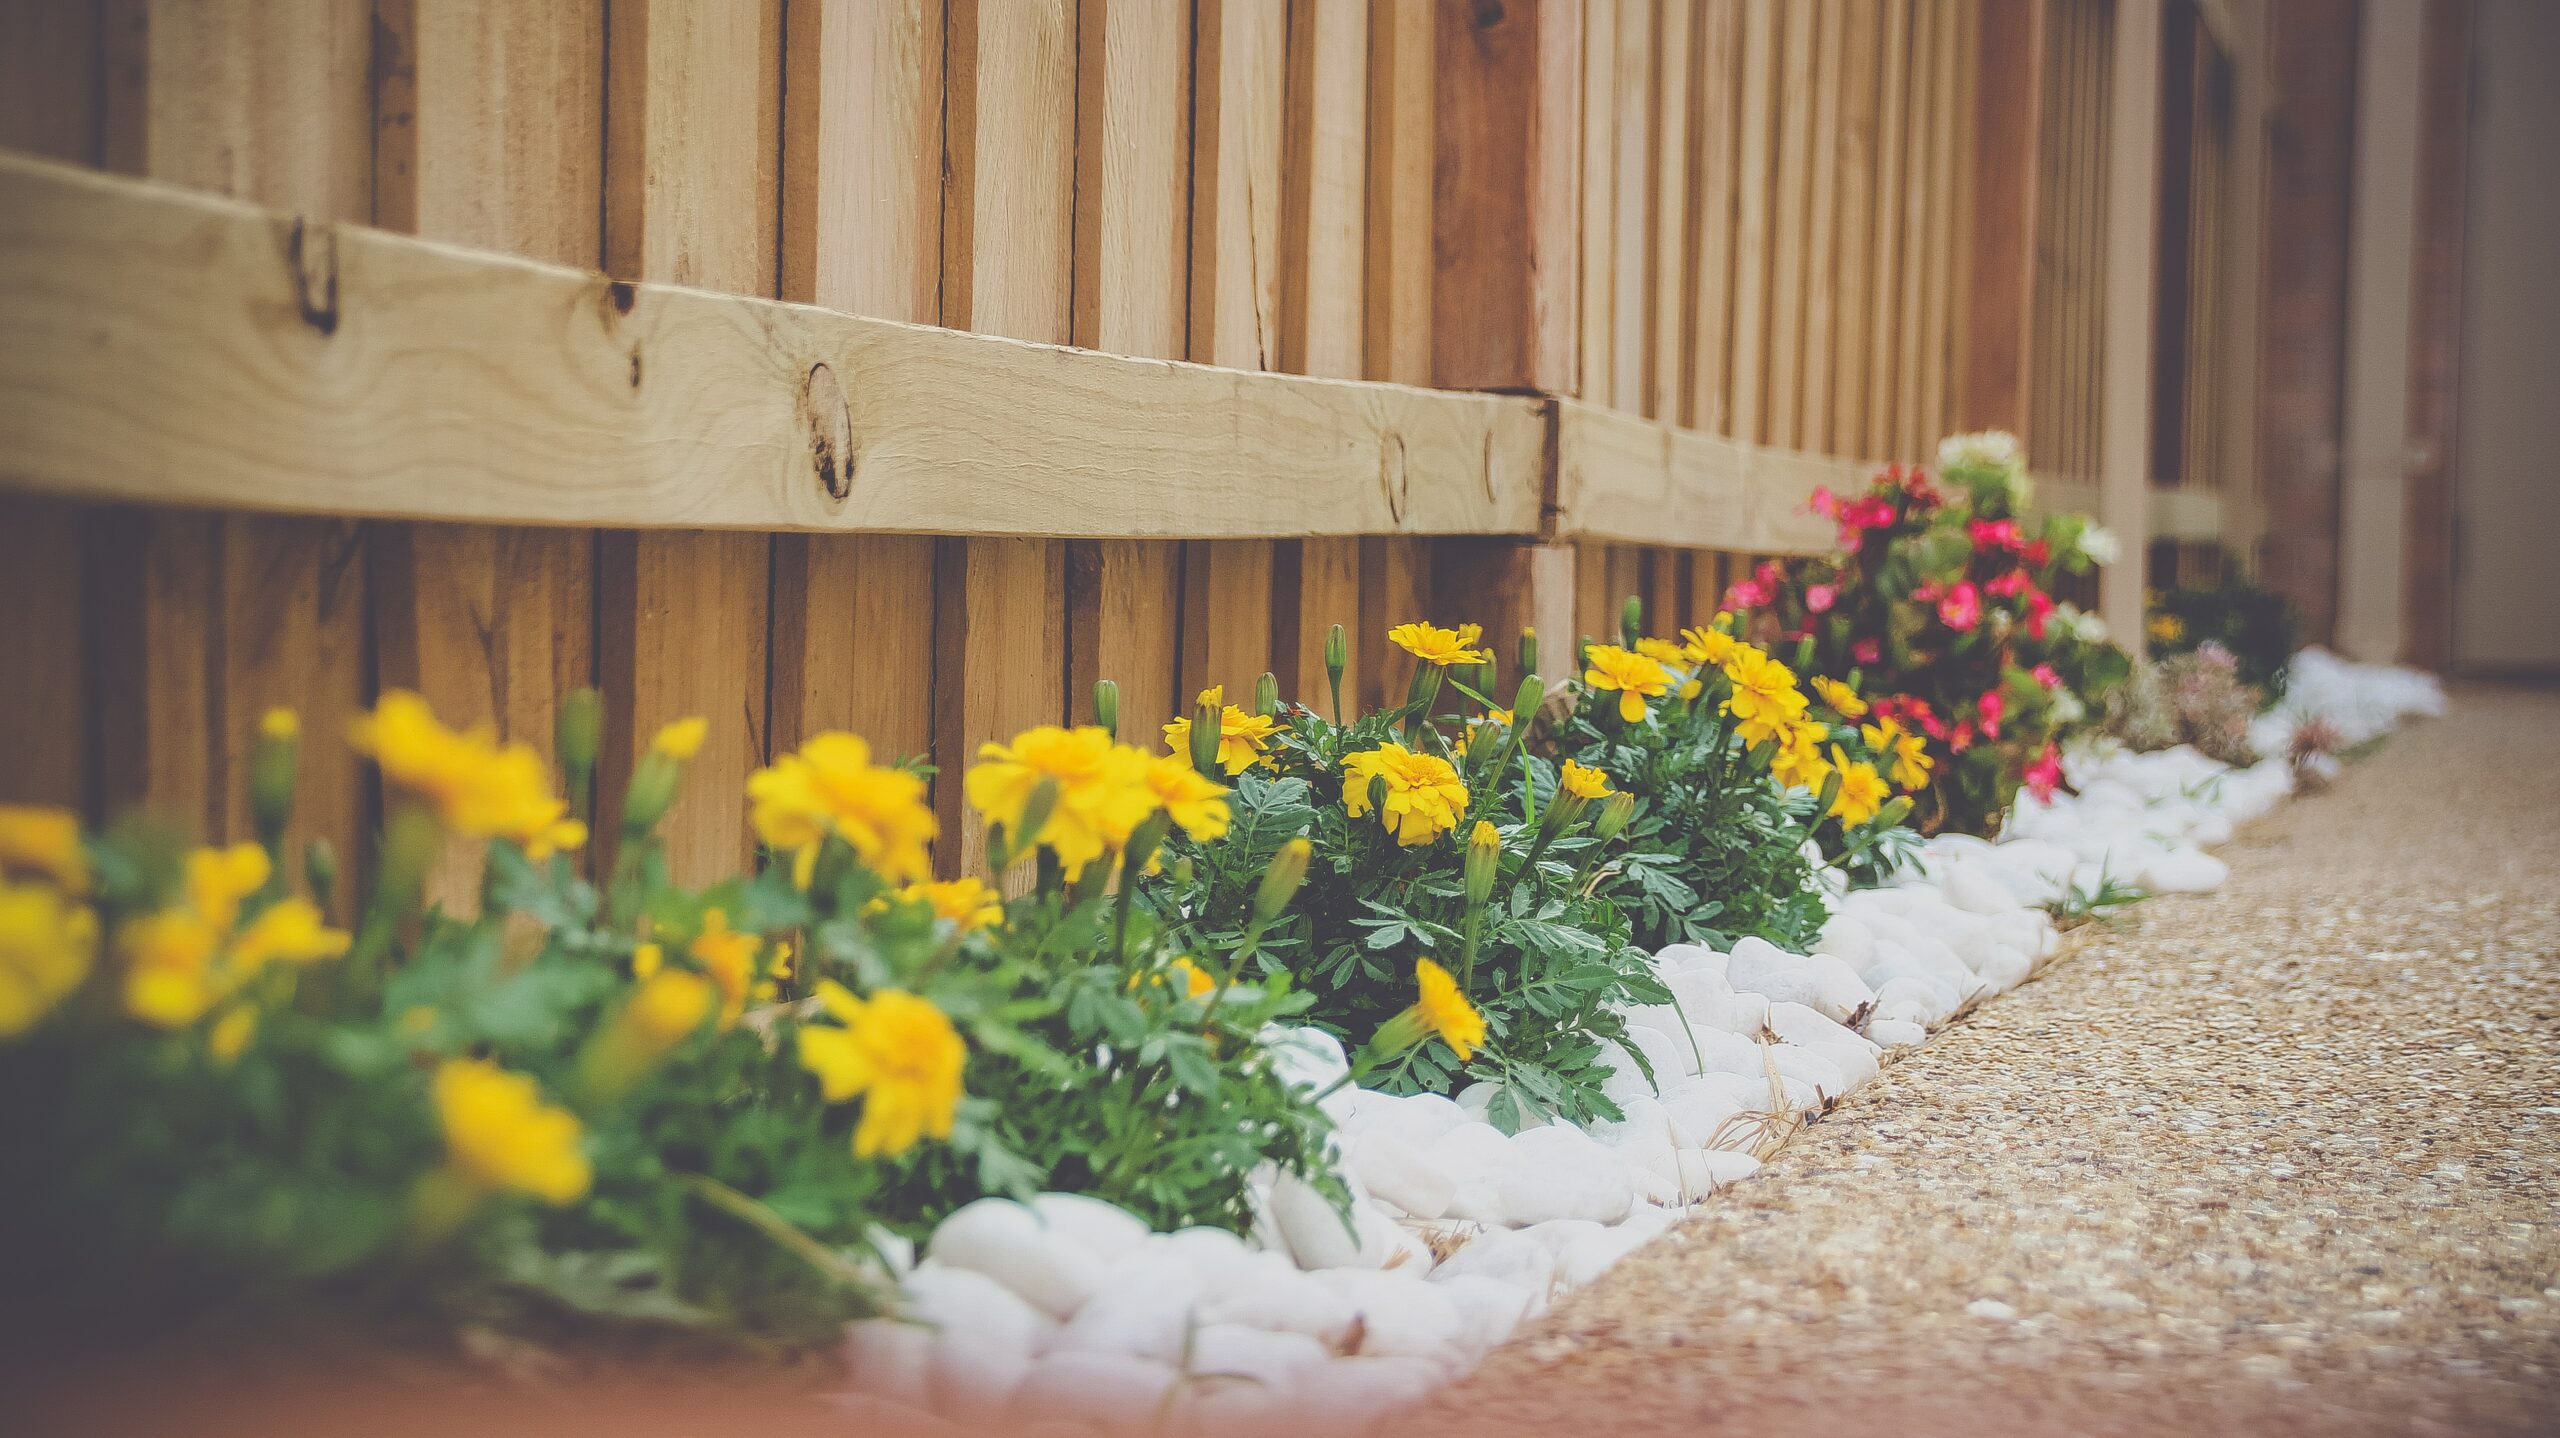 Flower bed next to a fence